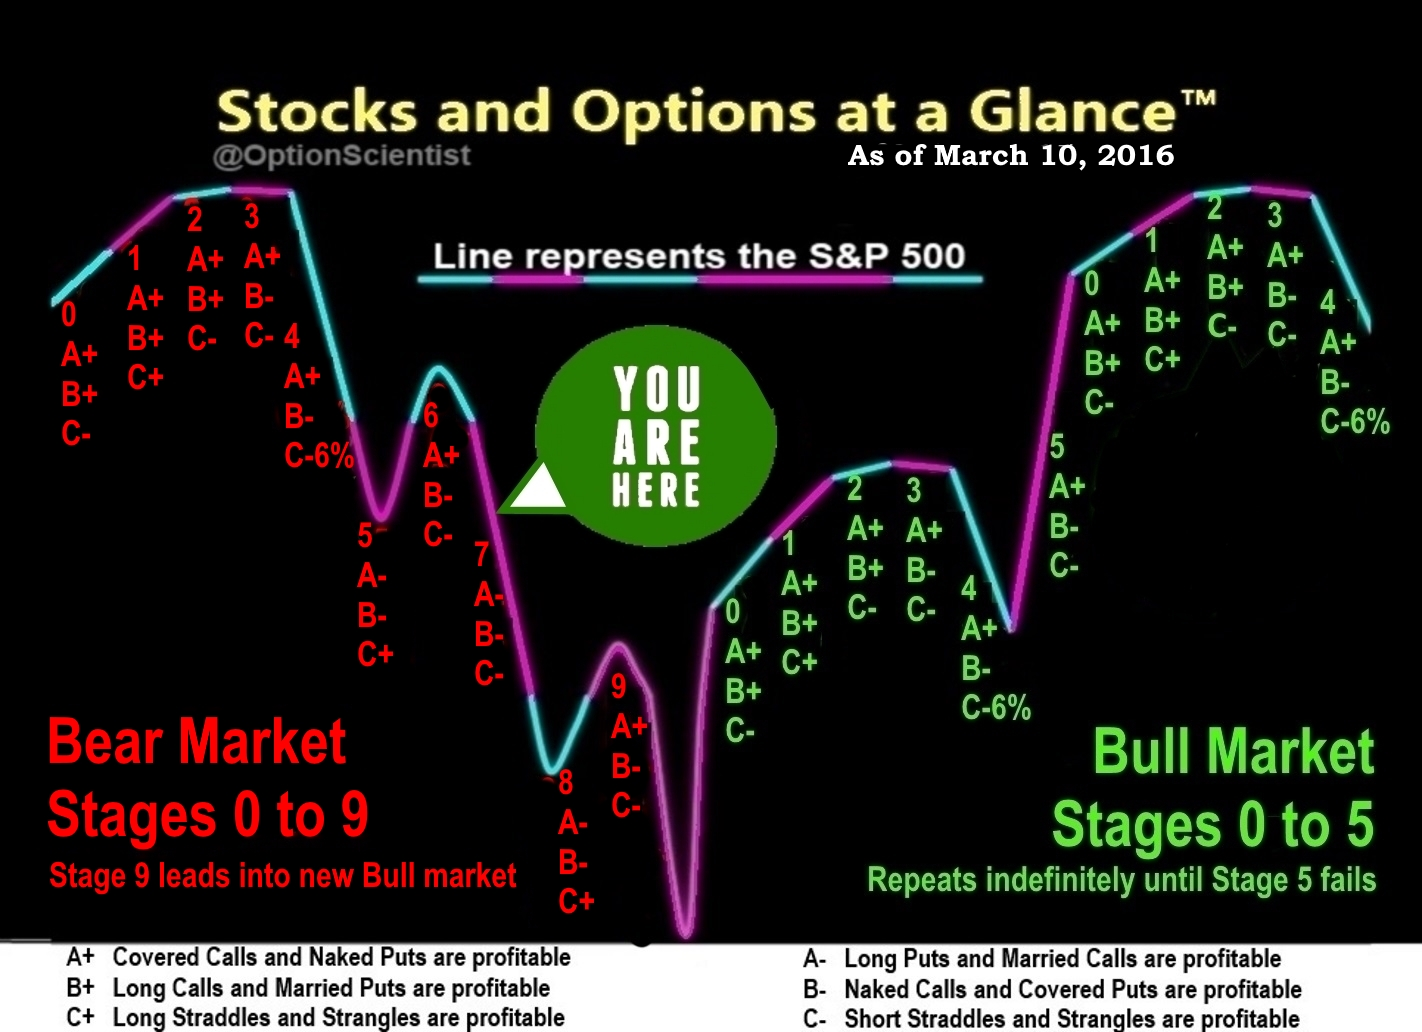 Stocks and Options at a Glance 03-10-16